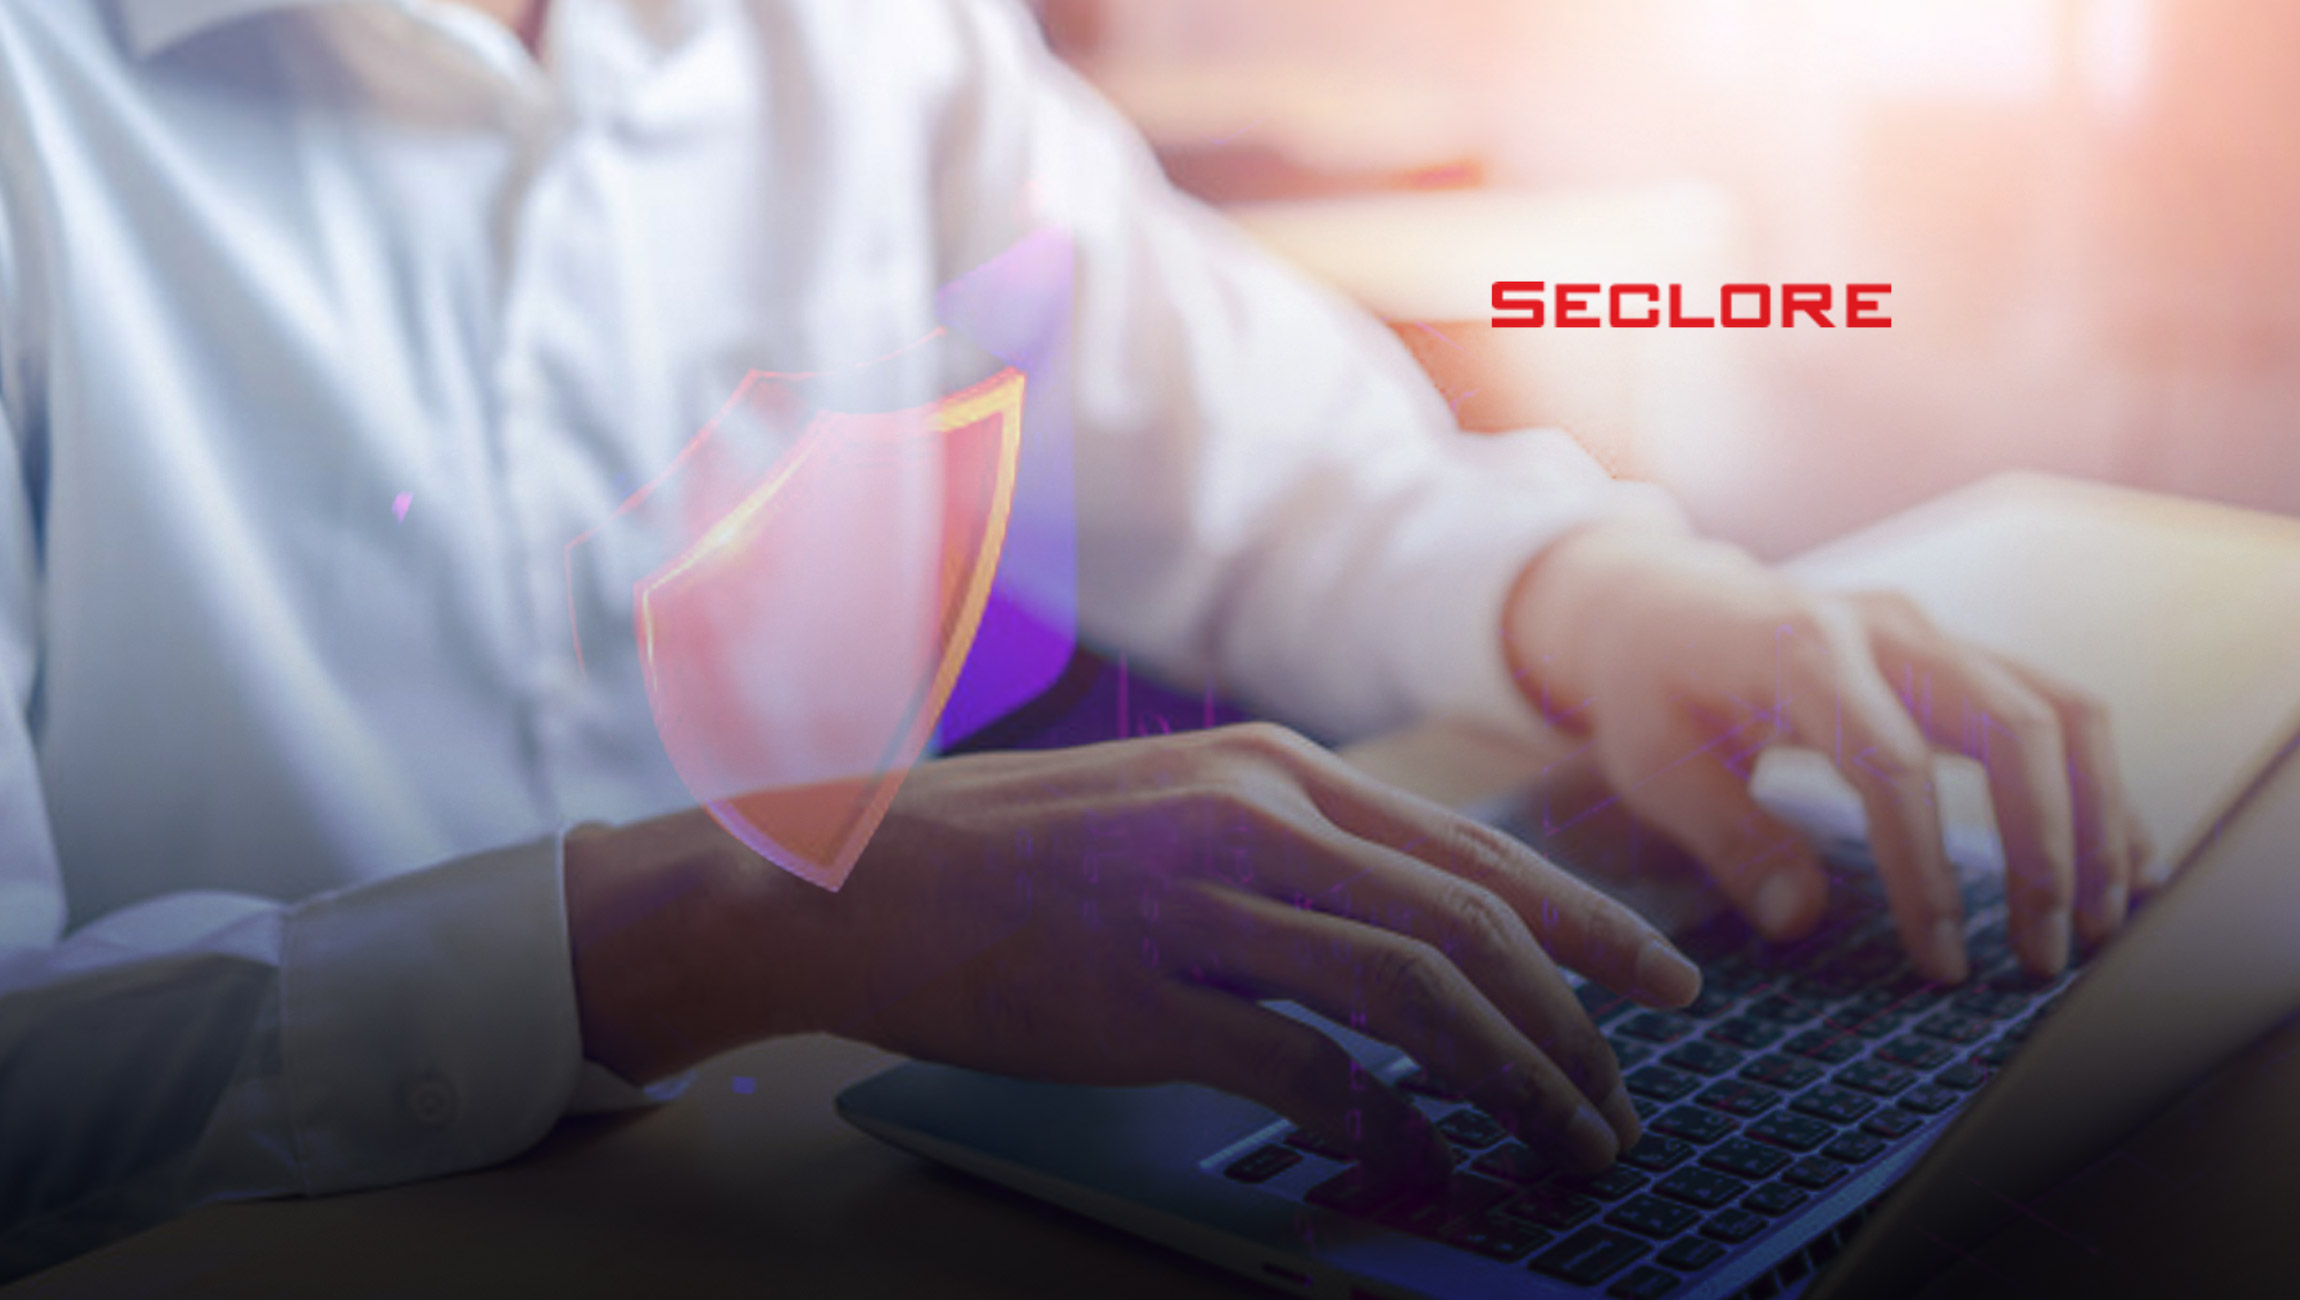 Seclore Launches Data-Centric Security for Microsoft Teams